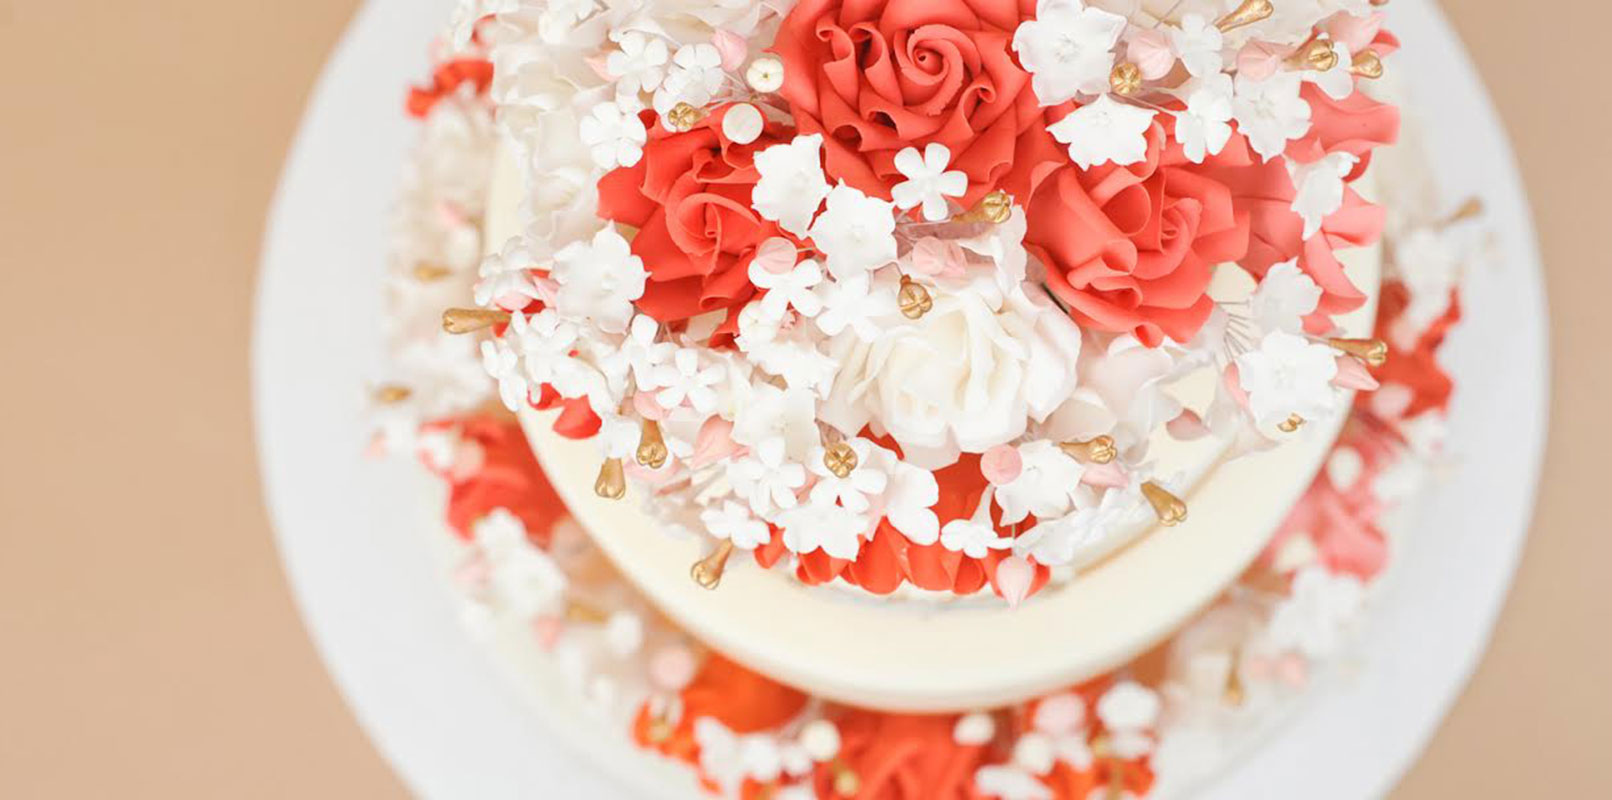 VIEW OUR WEDDING CAKE SELECTIONS